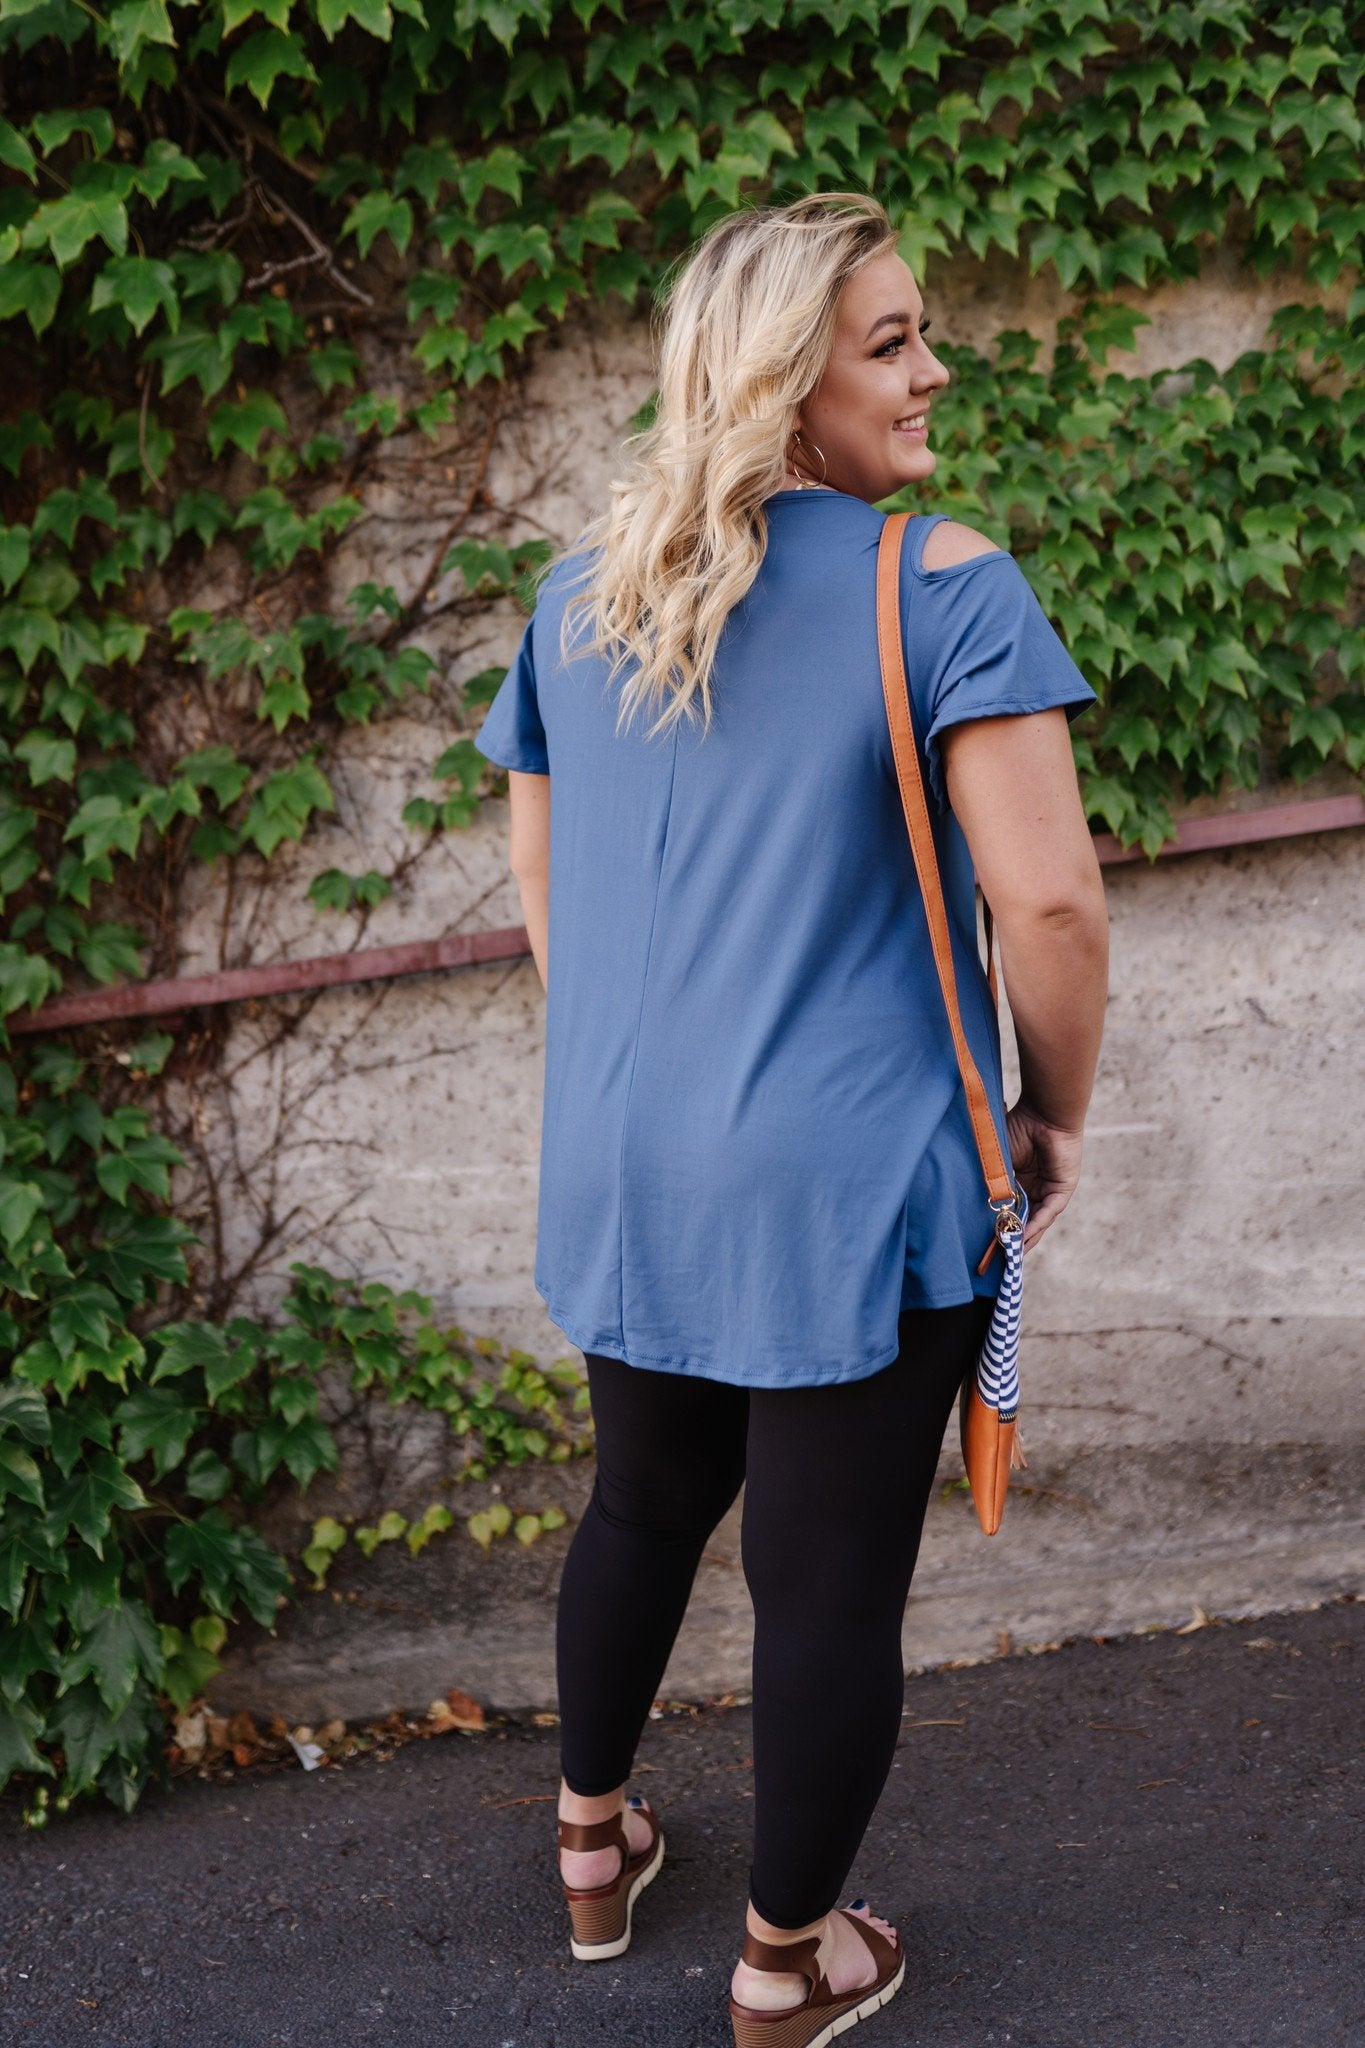 Steel Blue Magnolias Top